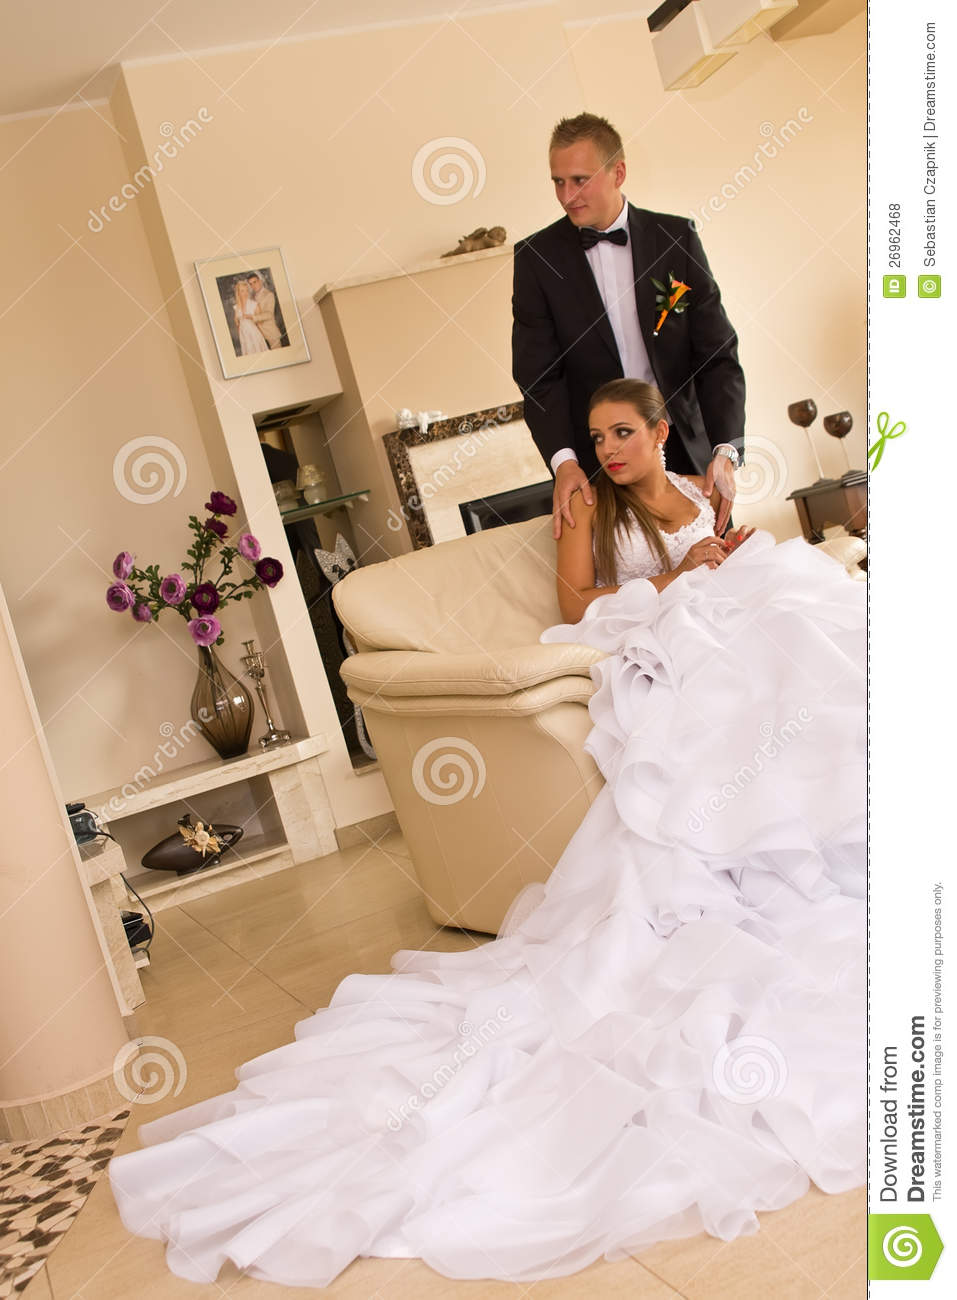 Newlywed Couple In Bedroom Royalty Free Stock Photos